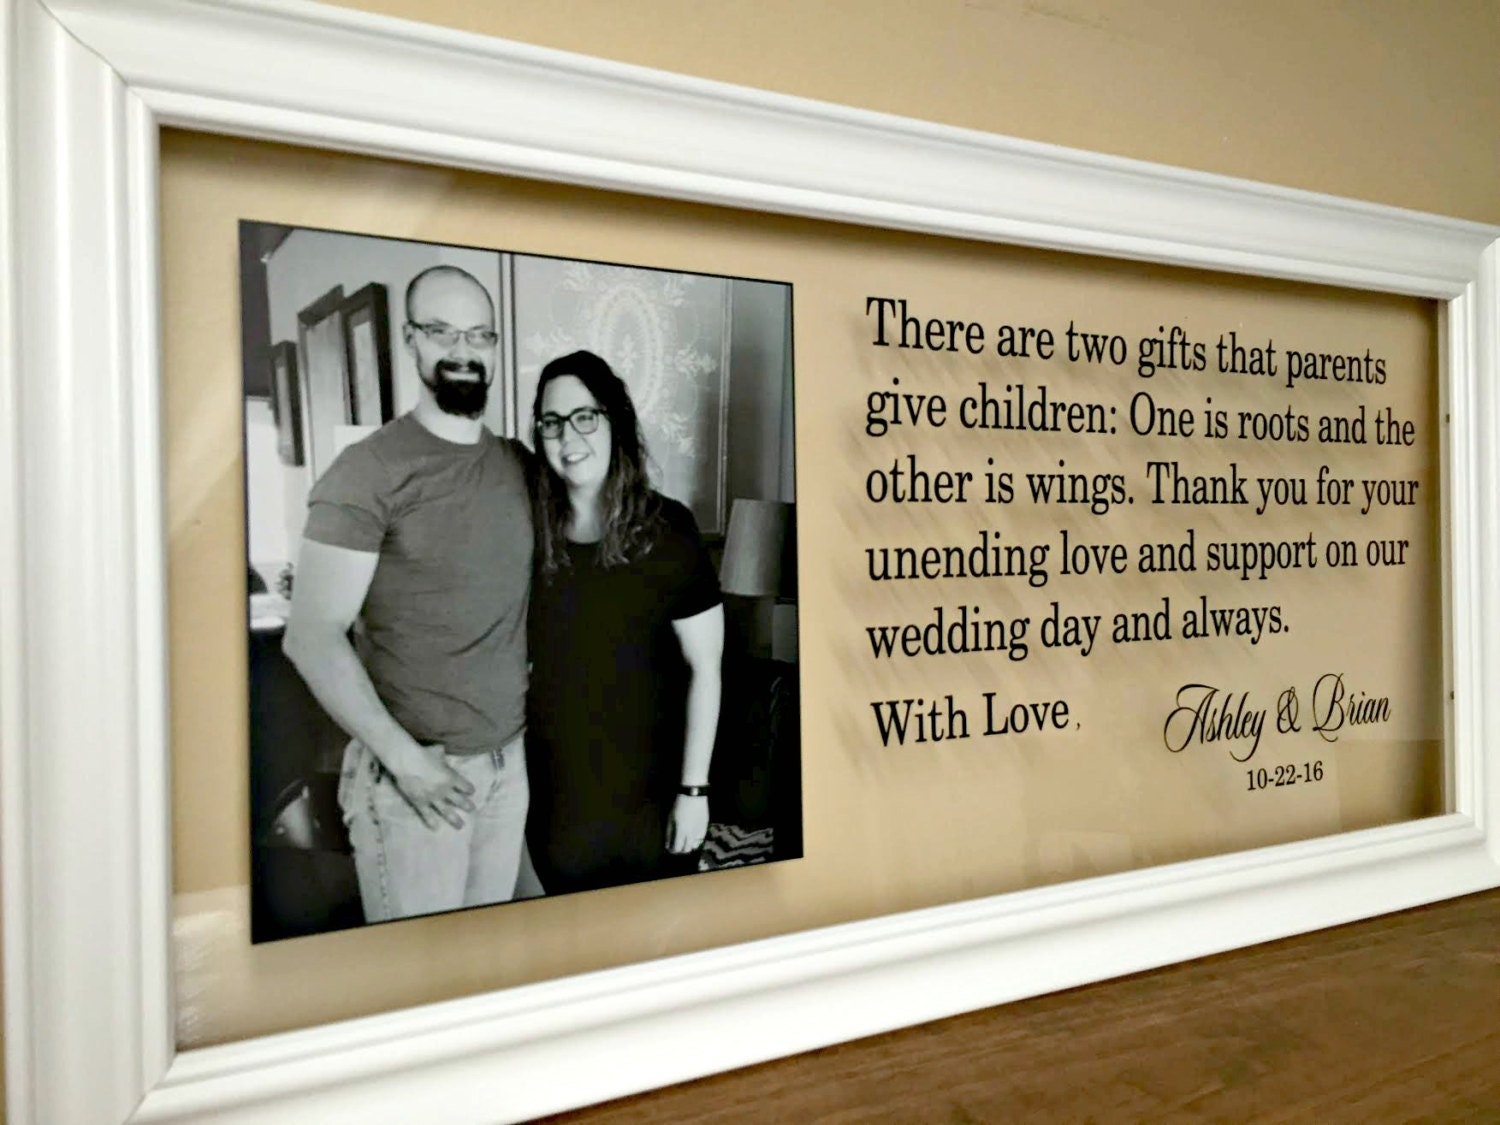 Wedding Gifts For Parents : Wedding Gifts for Parents Parents Gift Wedding Mother of the